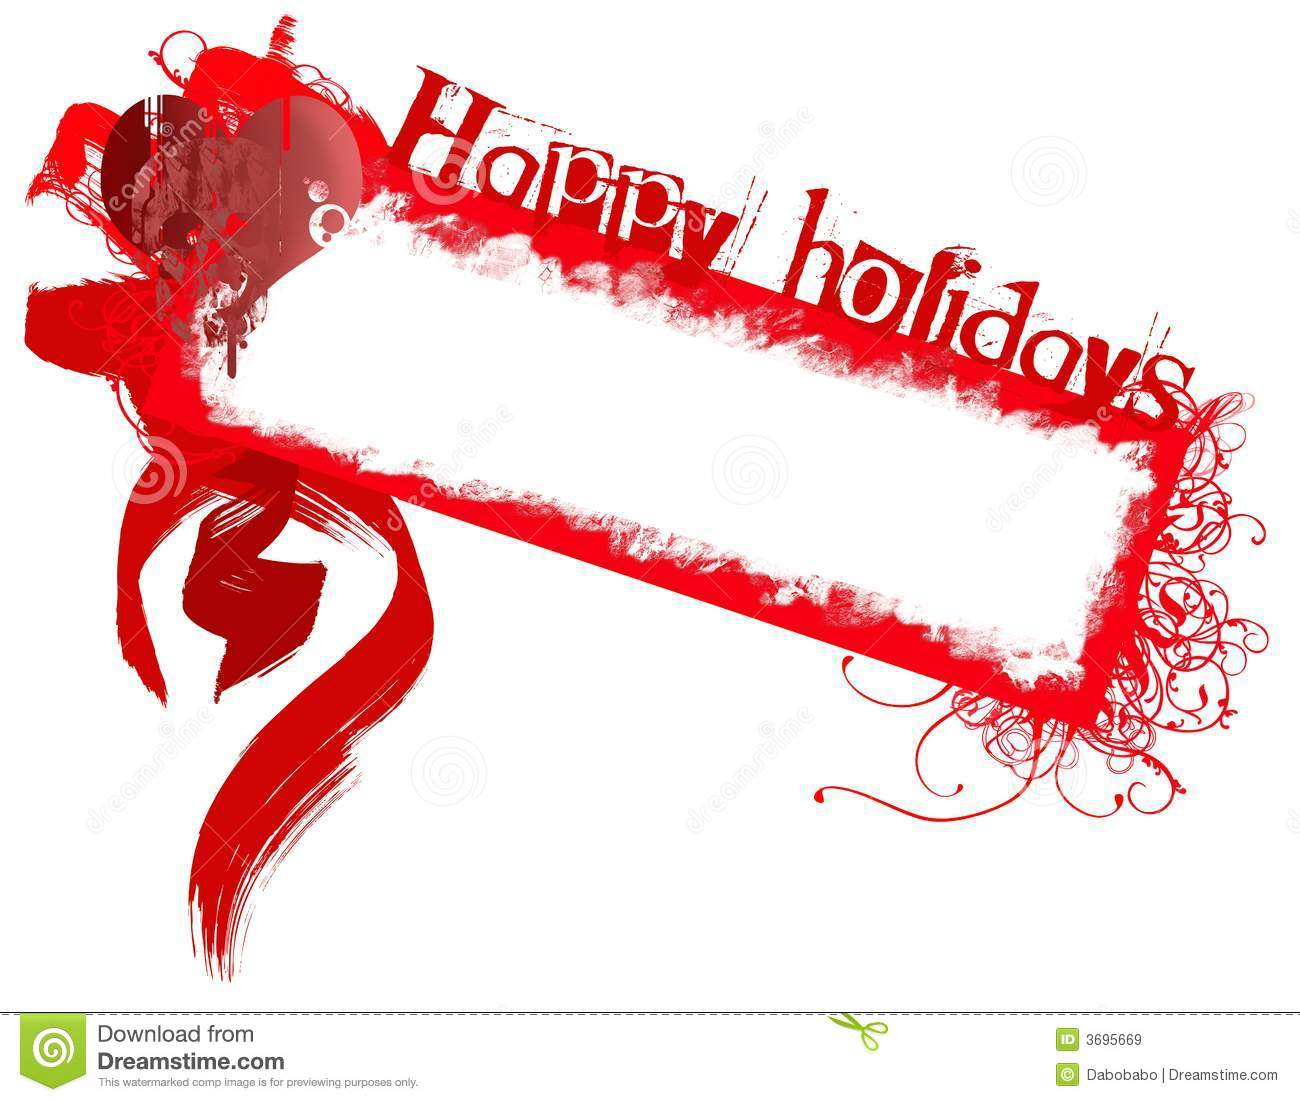 Holydays clipart holiday dinner Free clipart holiday clipart happy